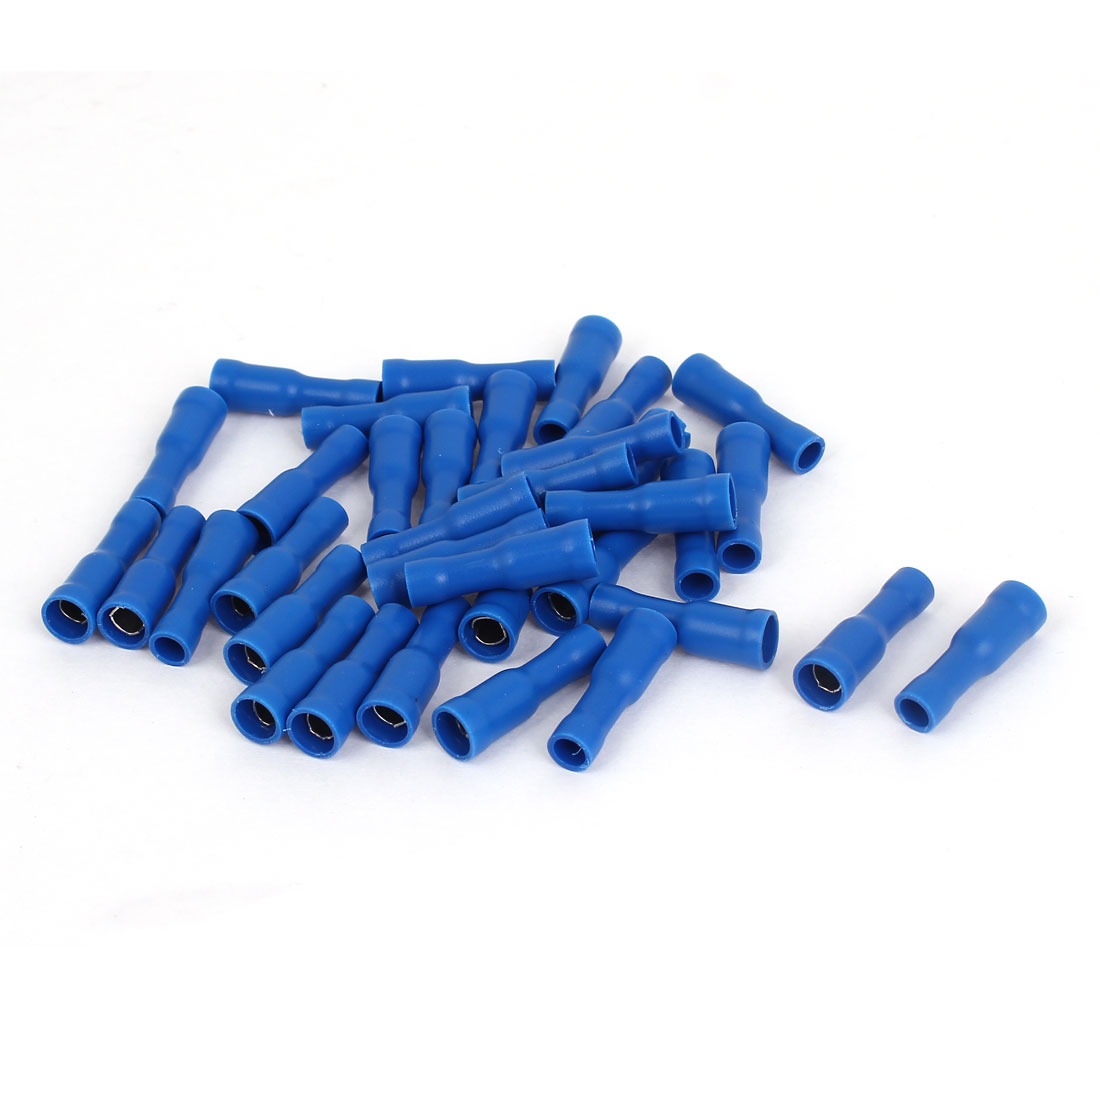 35 Pcs FRD1-156 12-10 AWG Blue PVC Sleeve Fully Insulated Crimp Terminals Cable Connector